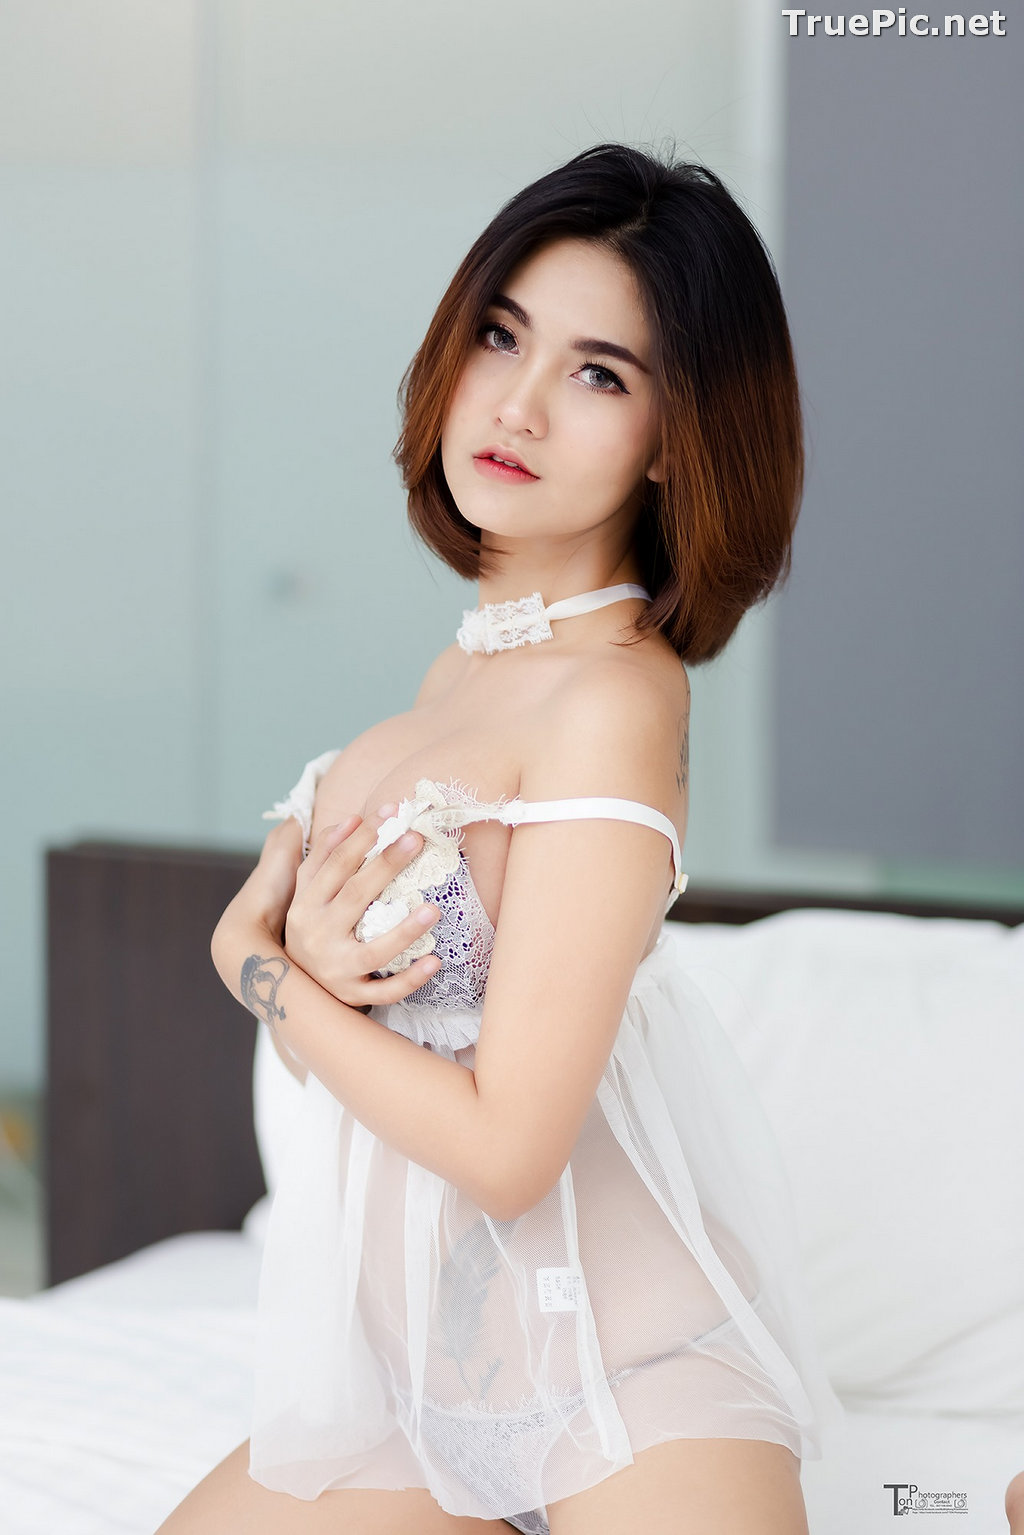 Image Thailand Sexy Model - Witsutar Ruechar - Beautiful Young Lady - TruePic.net - Picture-3